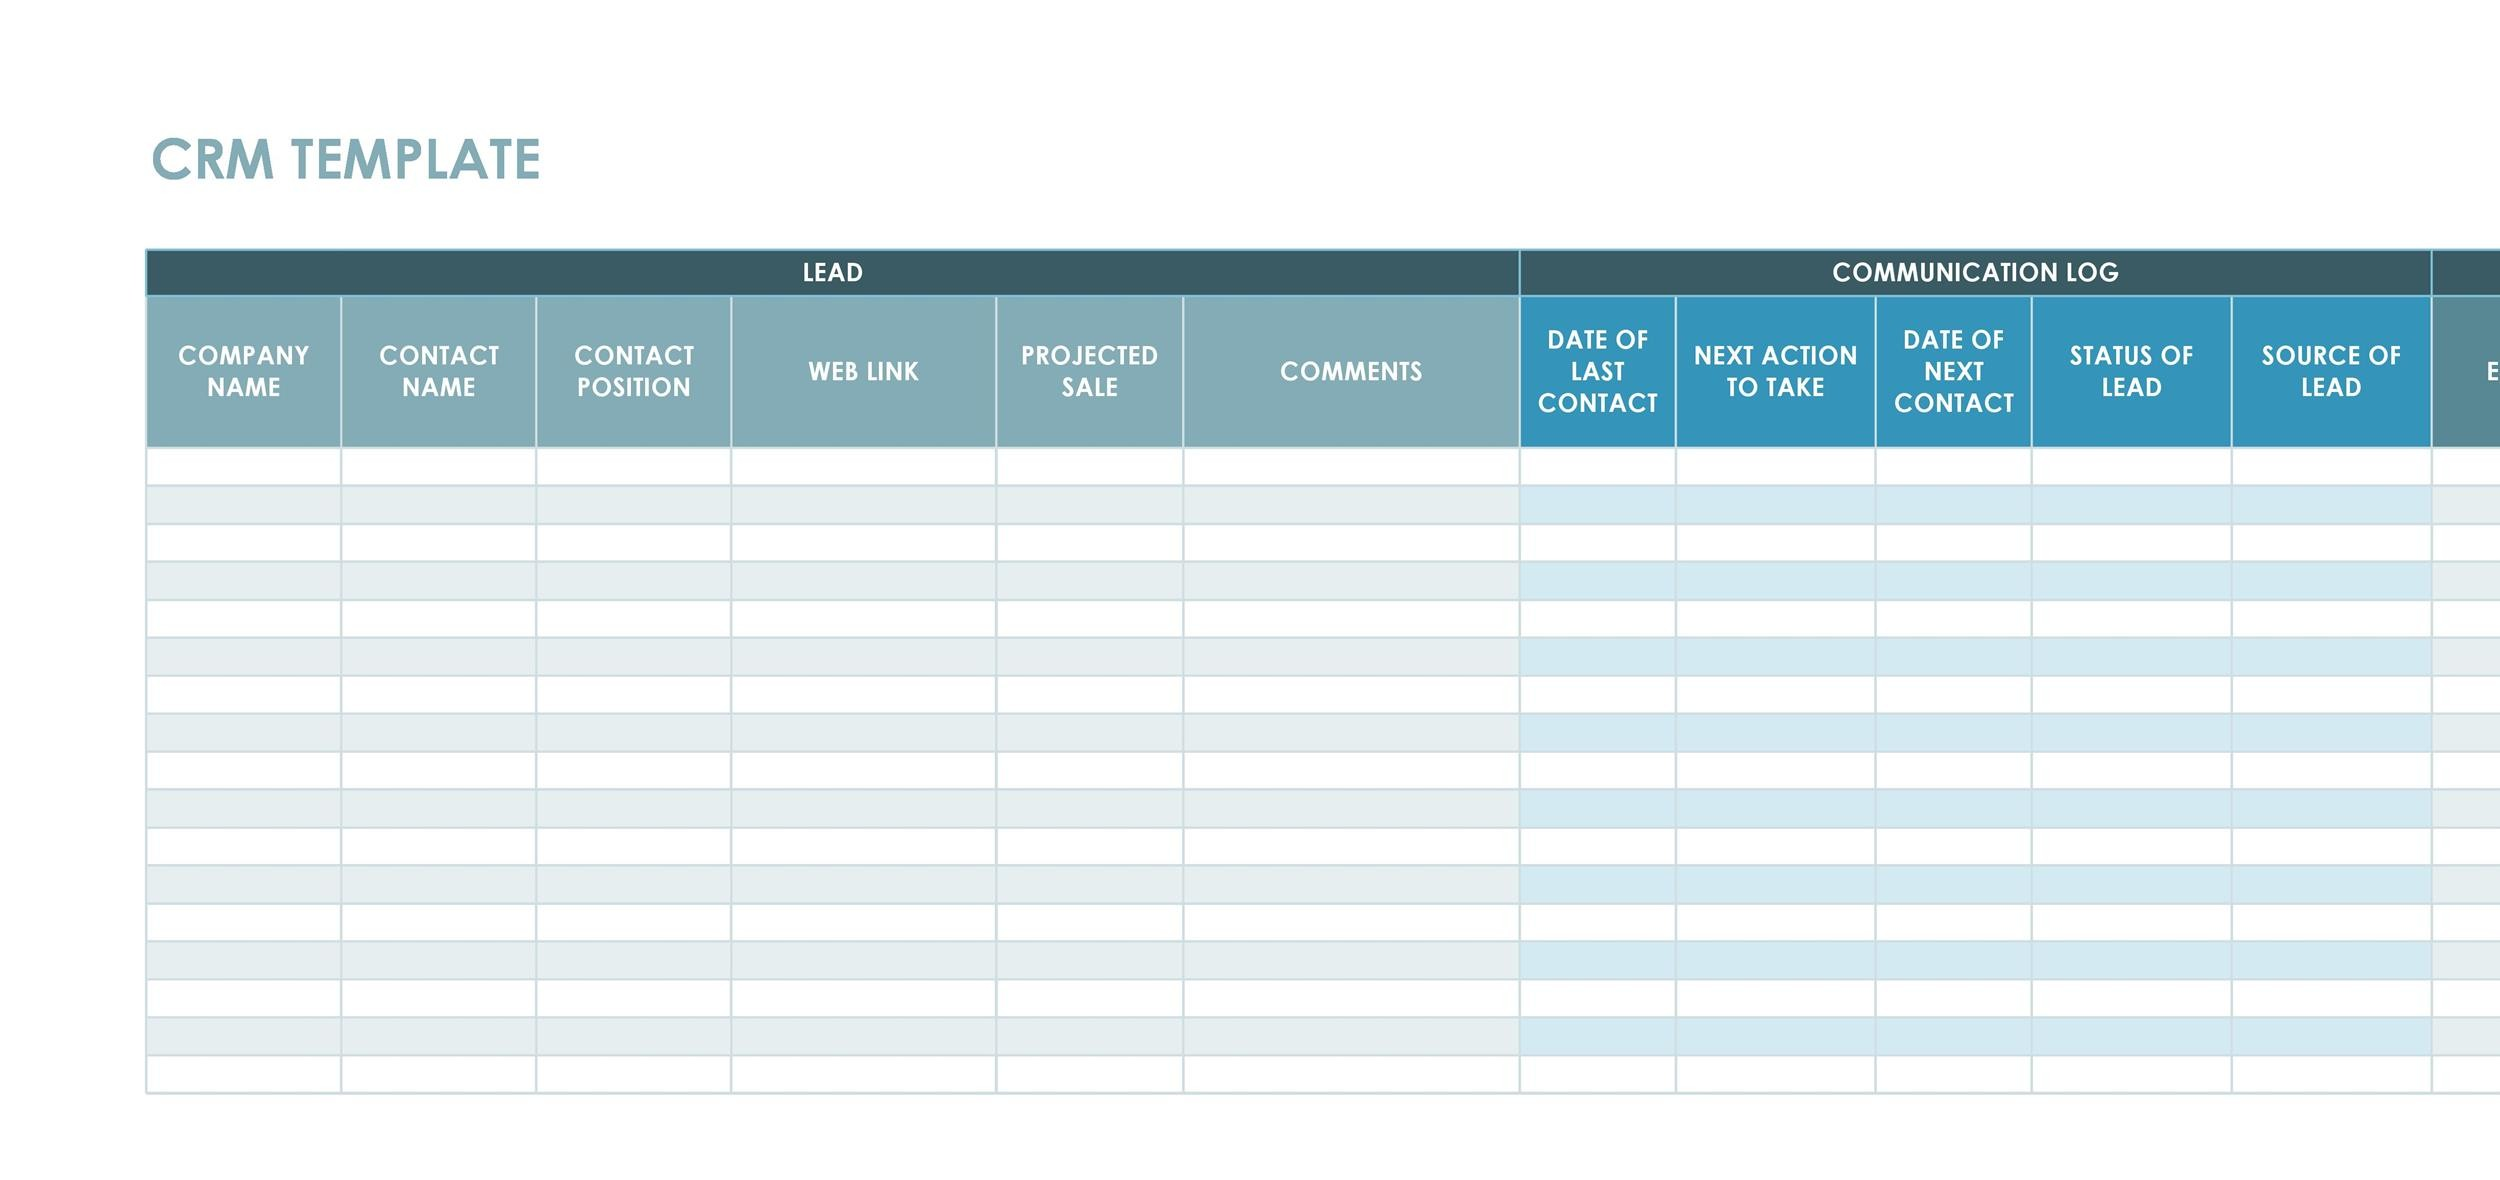 Free crm excel template 02